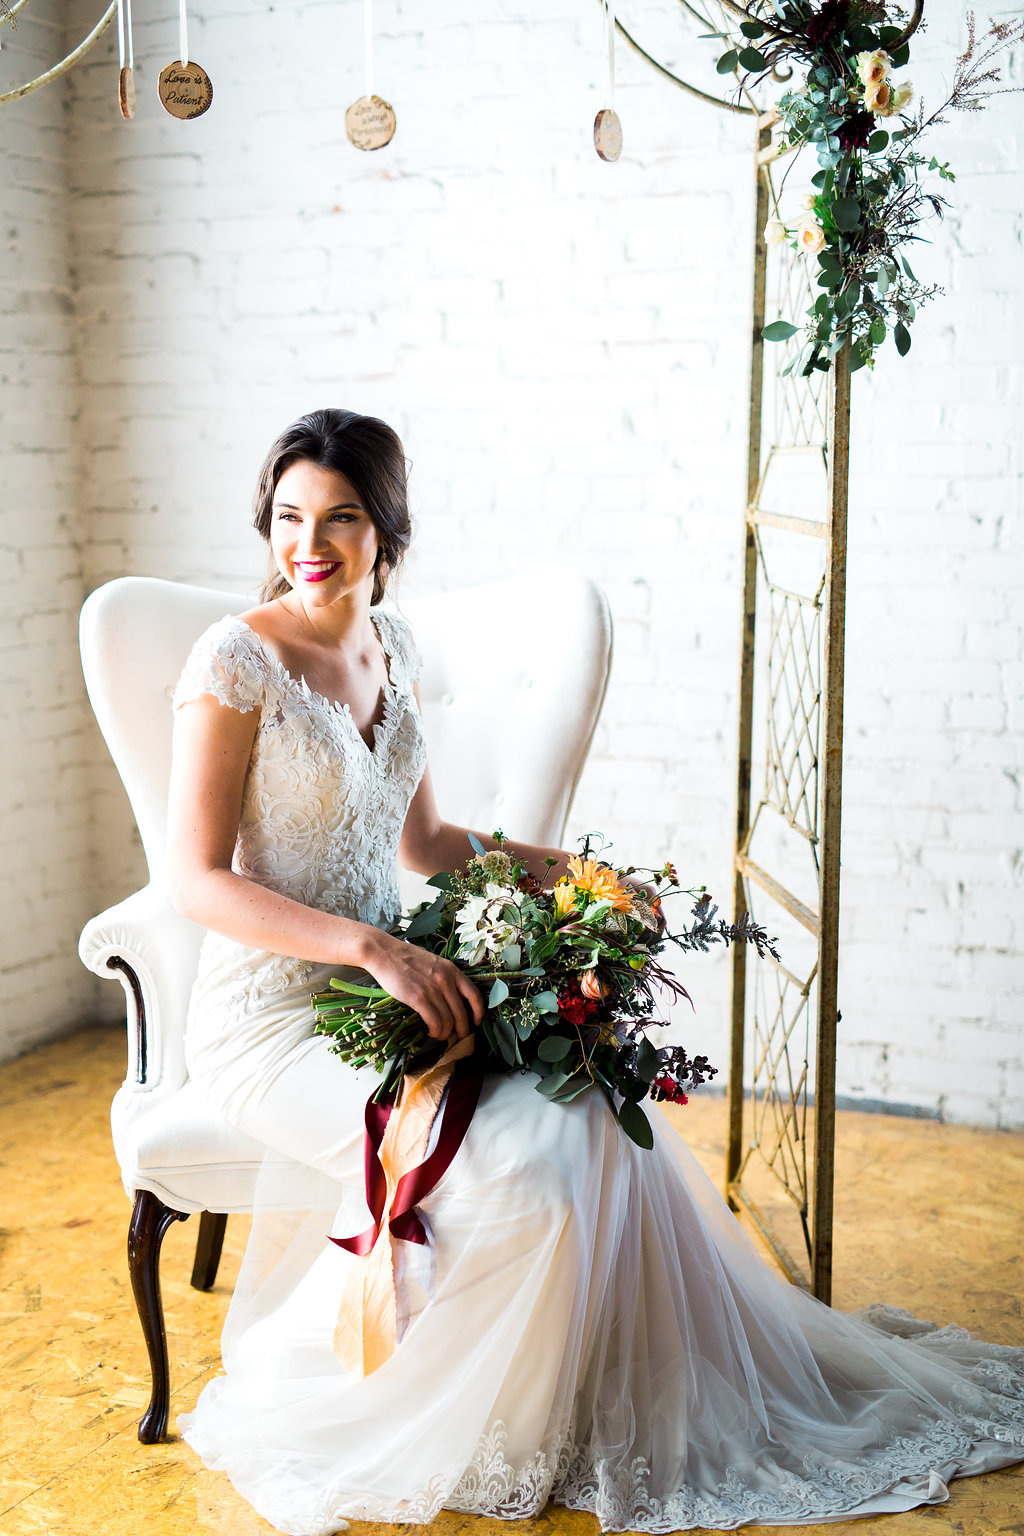 Gown: White Traditions Bridal House